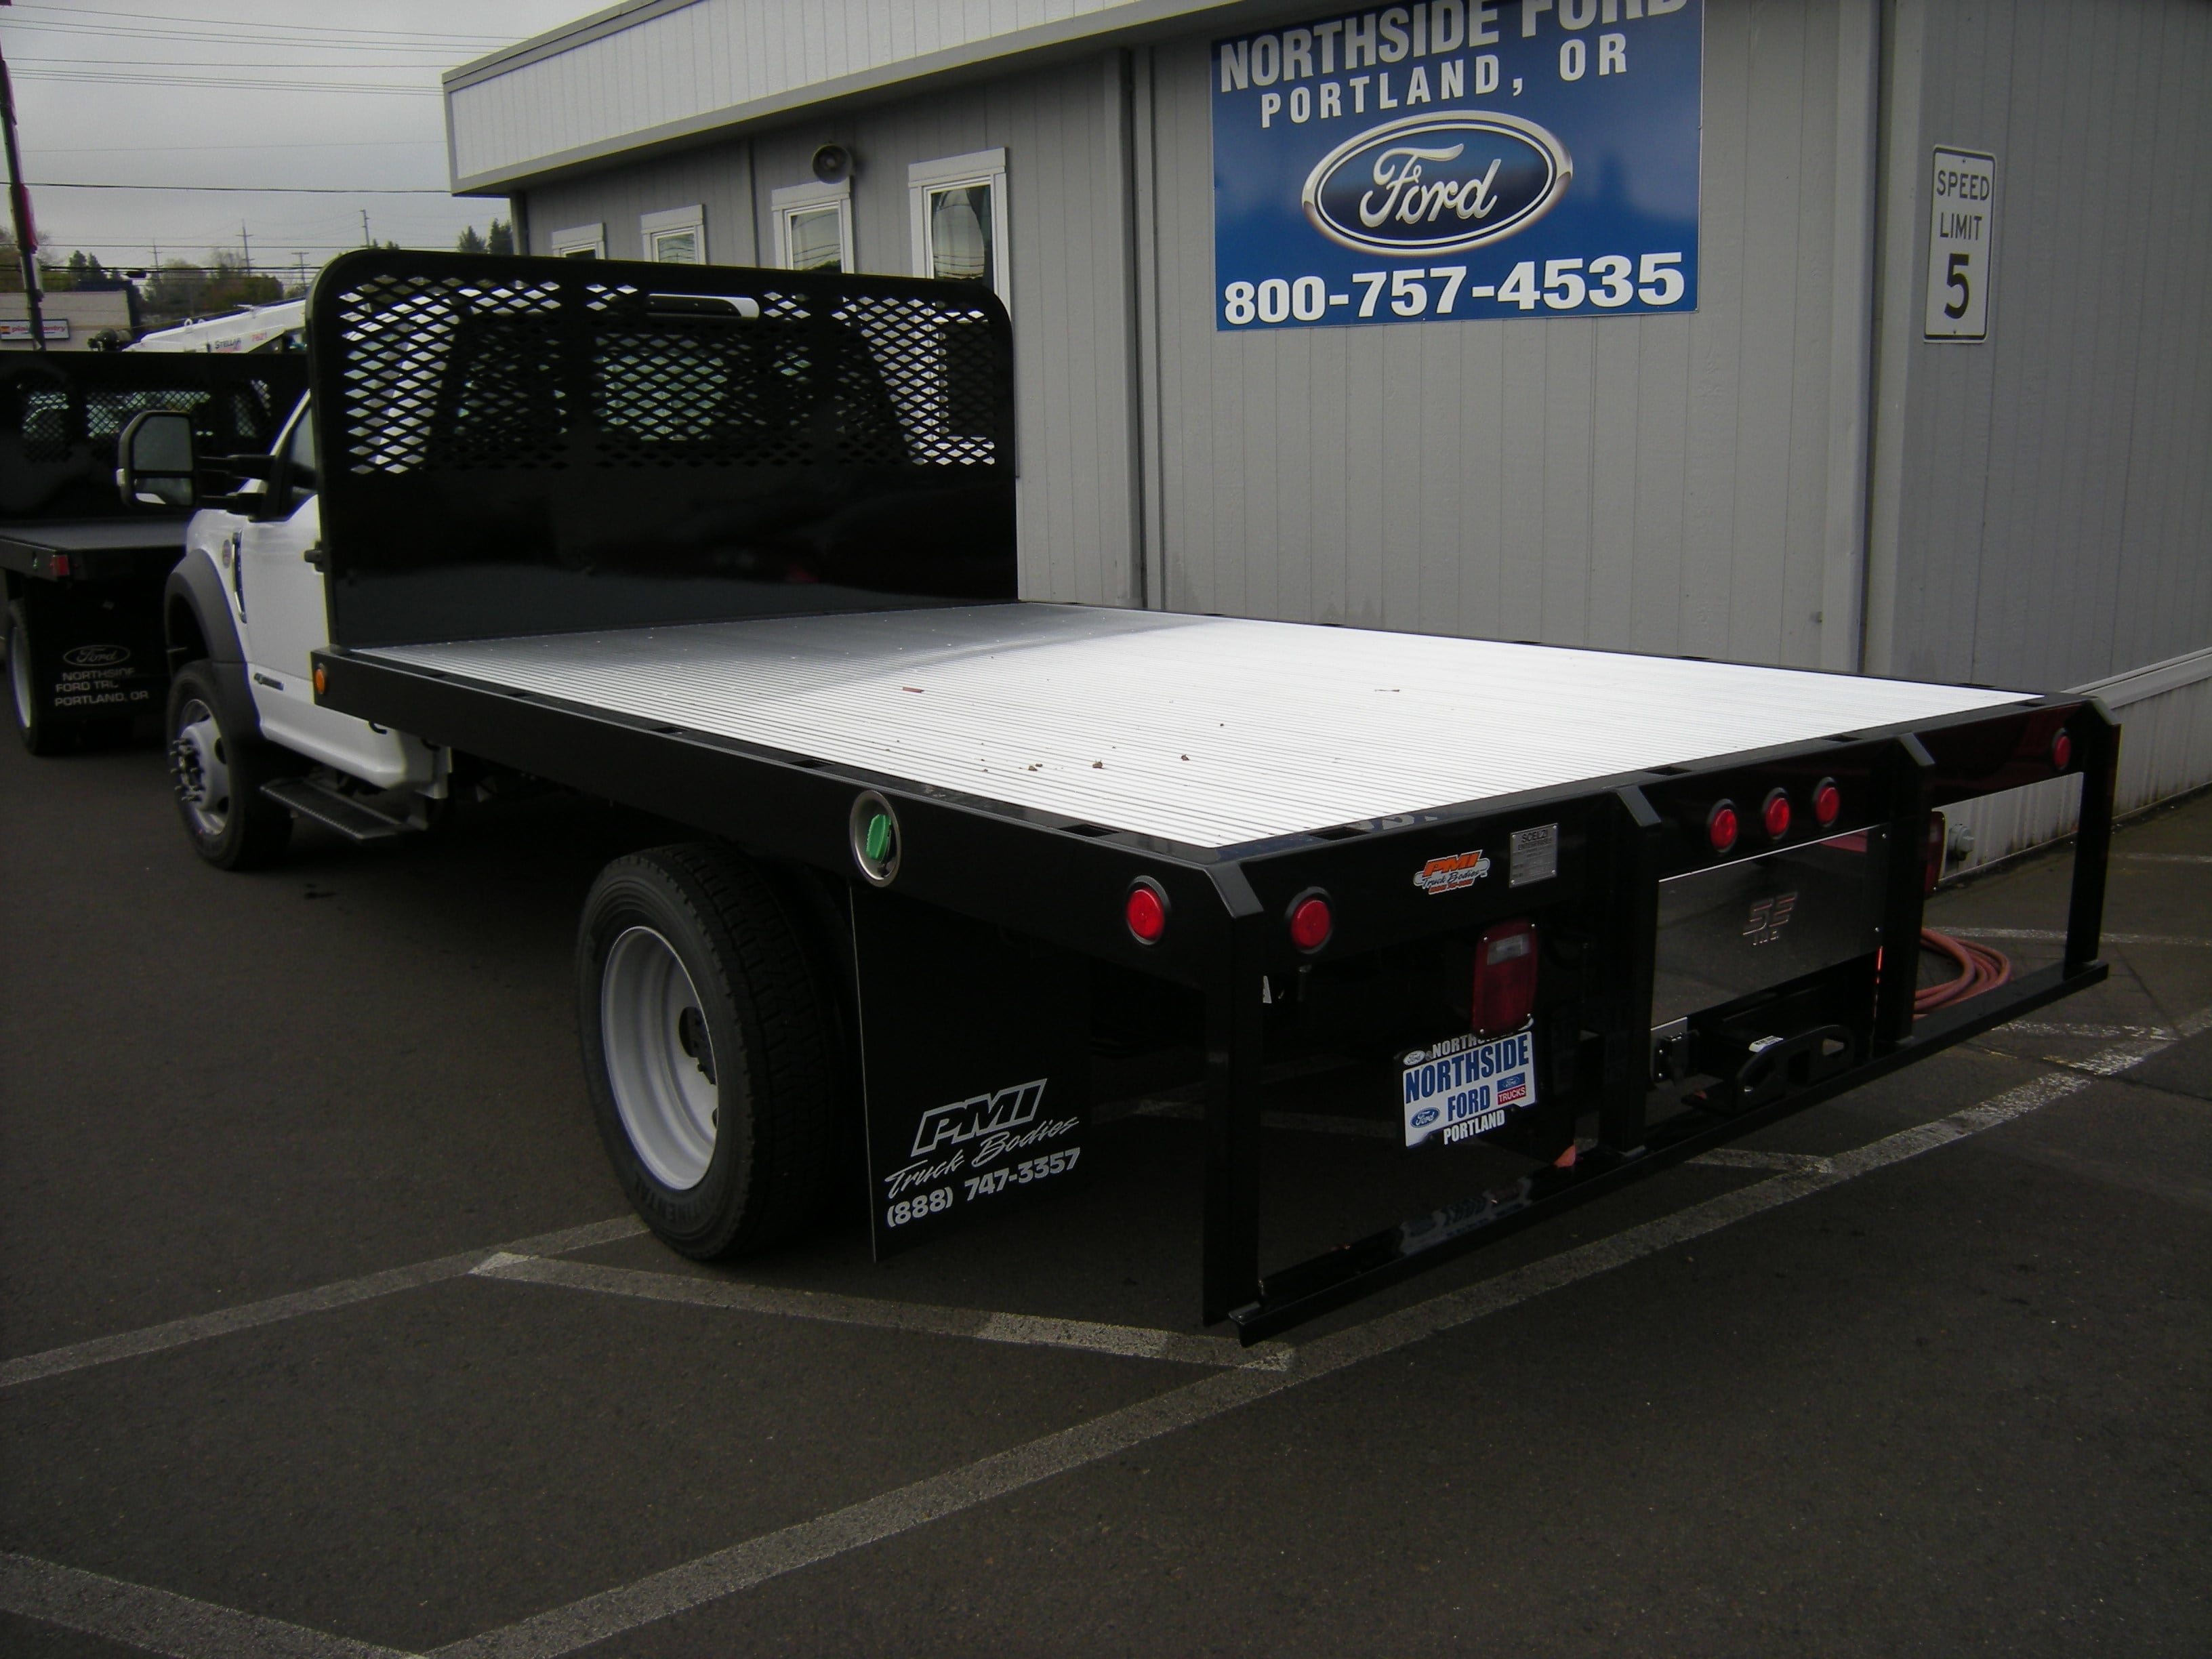 2018 F-550 Regular Cab DRW, Platform Body #5690 - photo 2